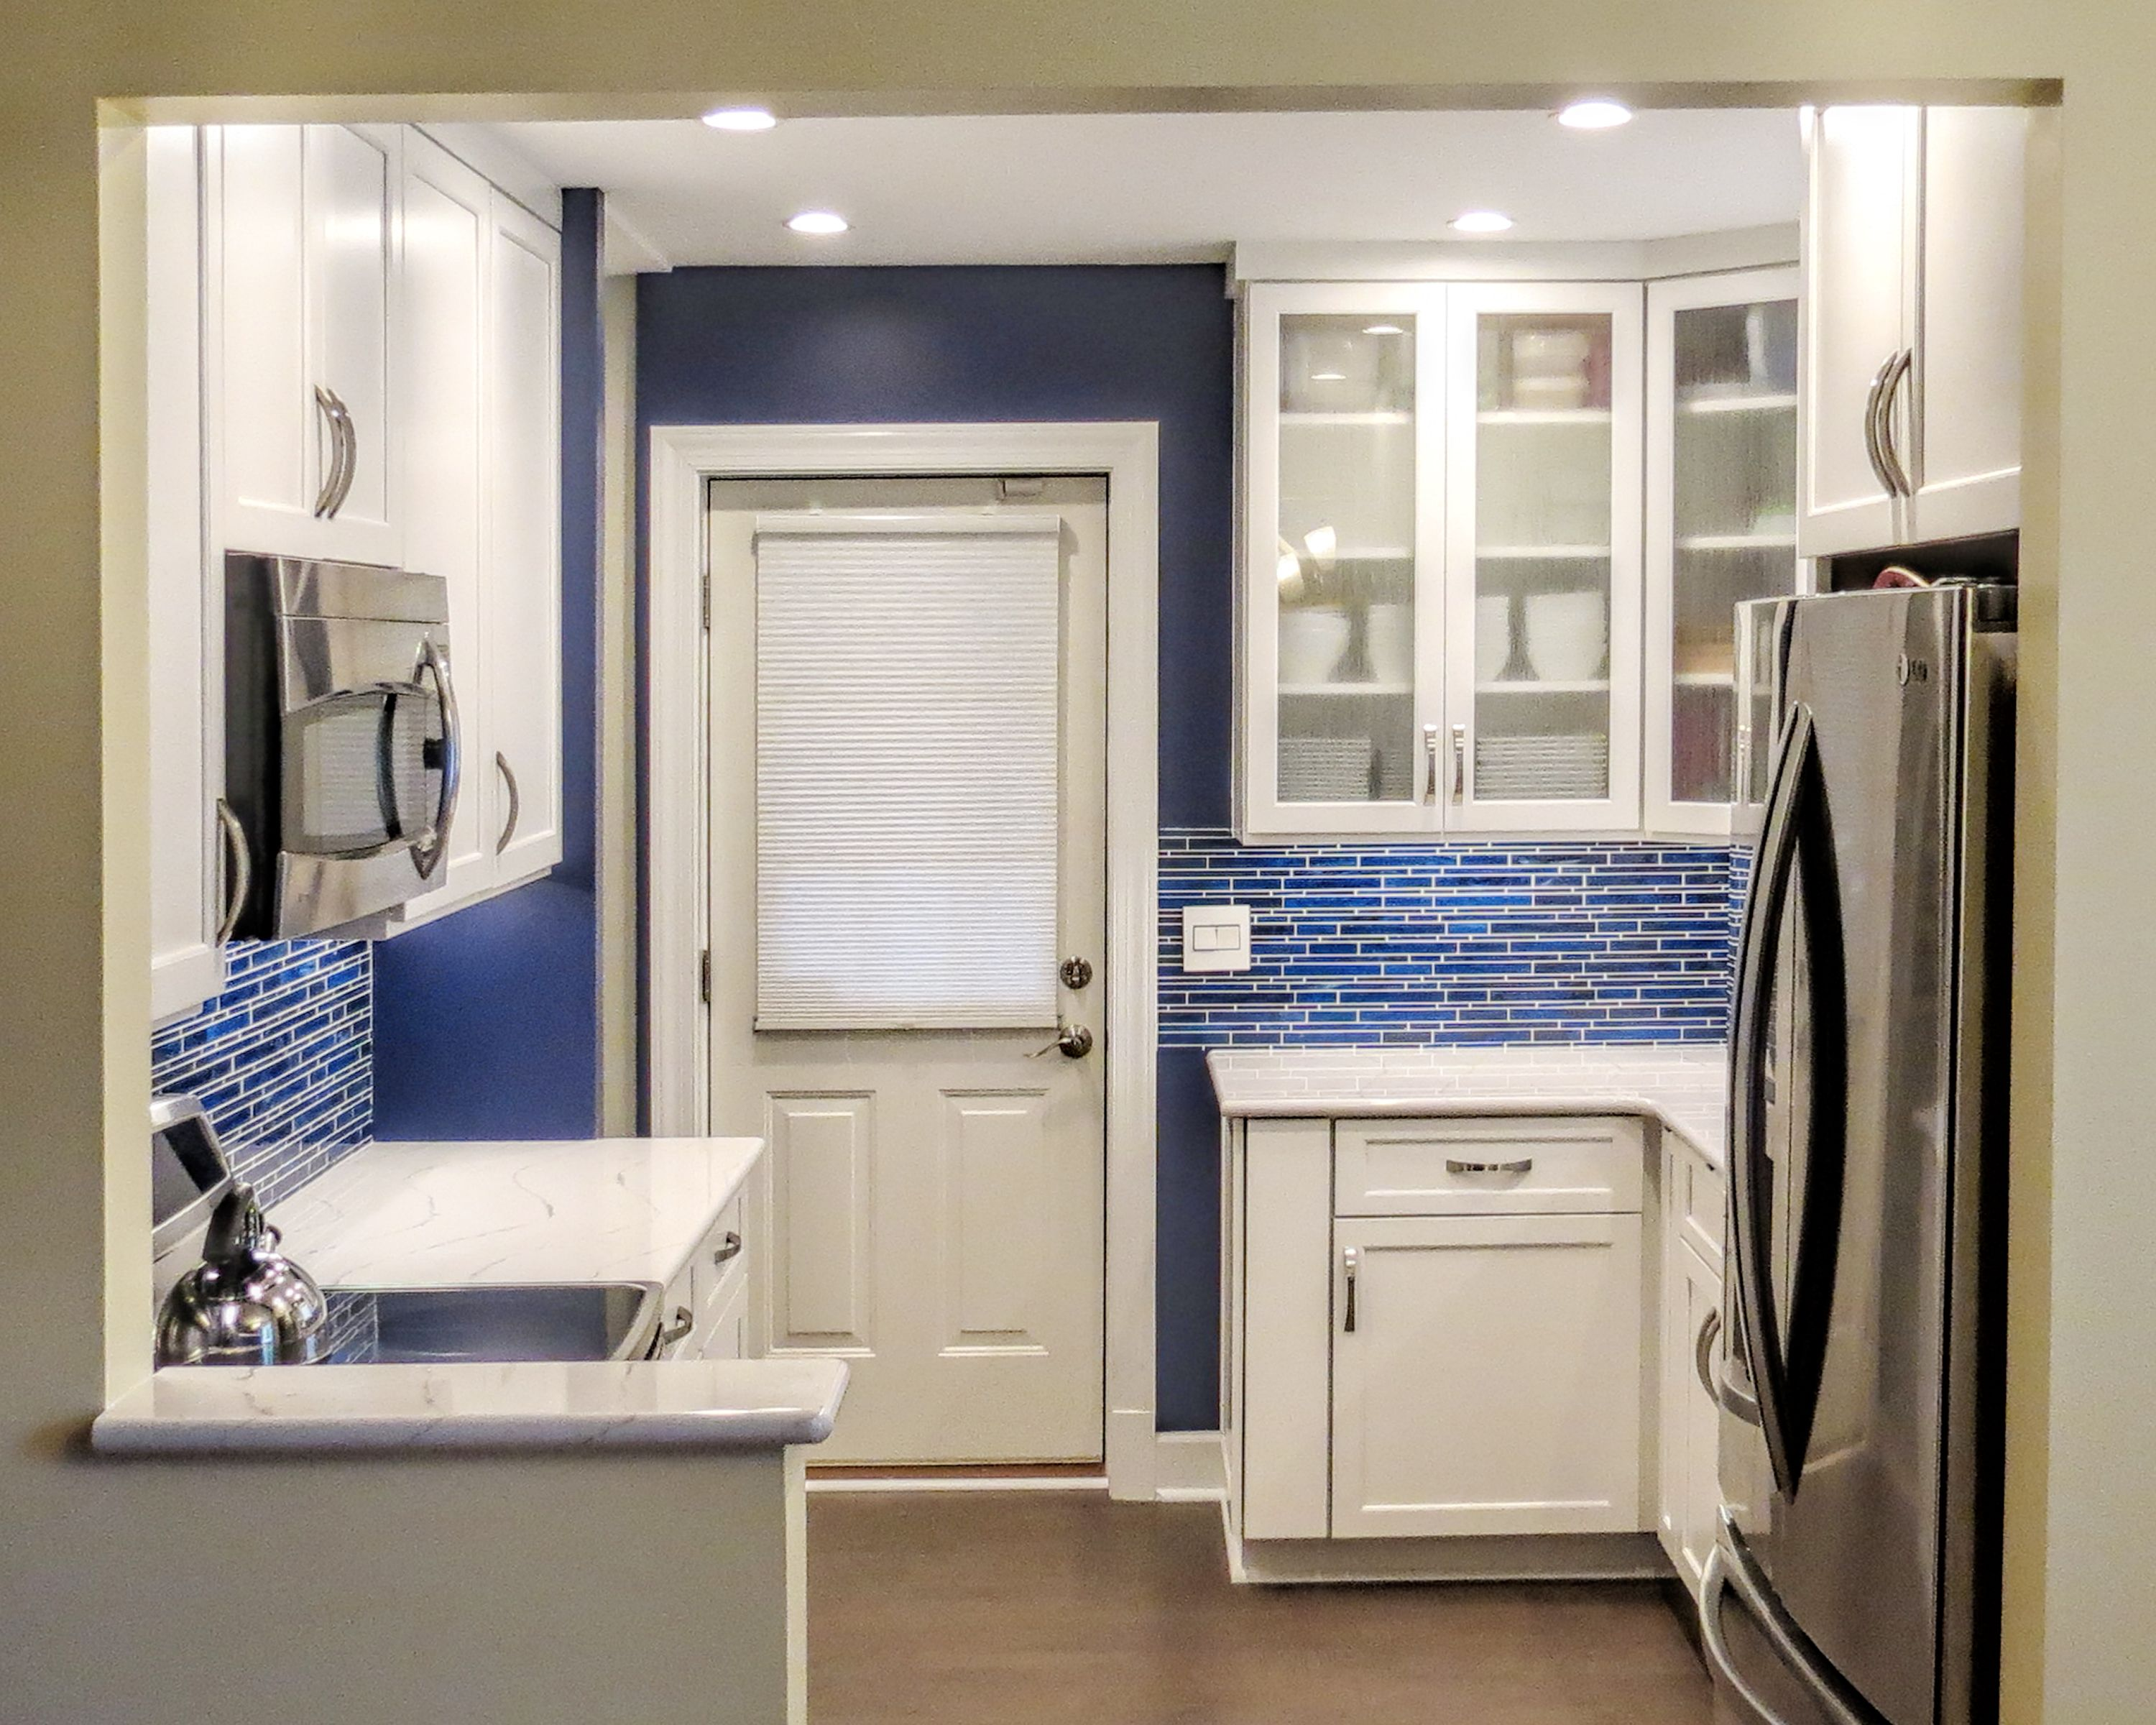 Kitchen Remodeling Silver Spring Md Faucets Reviews Award Of Merit Remodel Addition Under 50 000 Mangan Group Architects Project V W